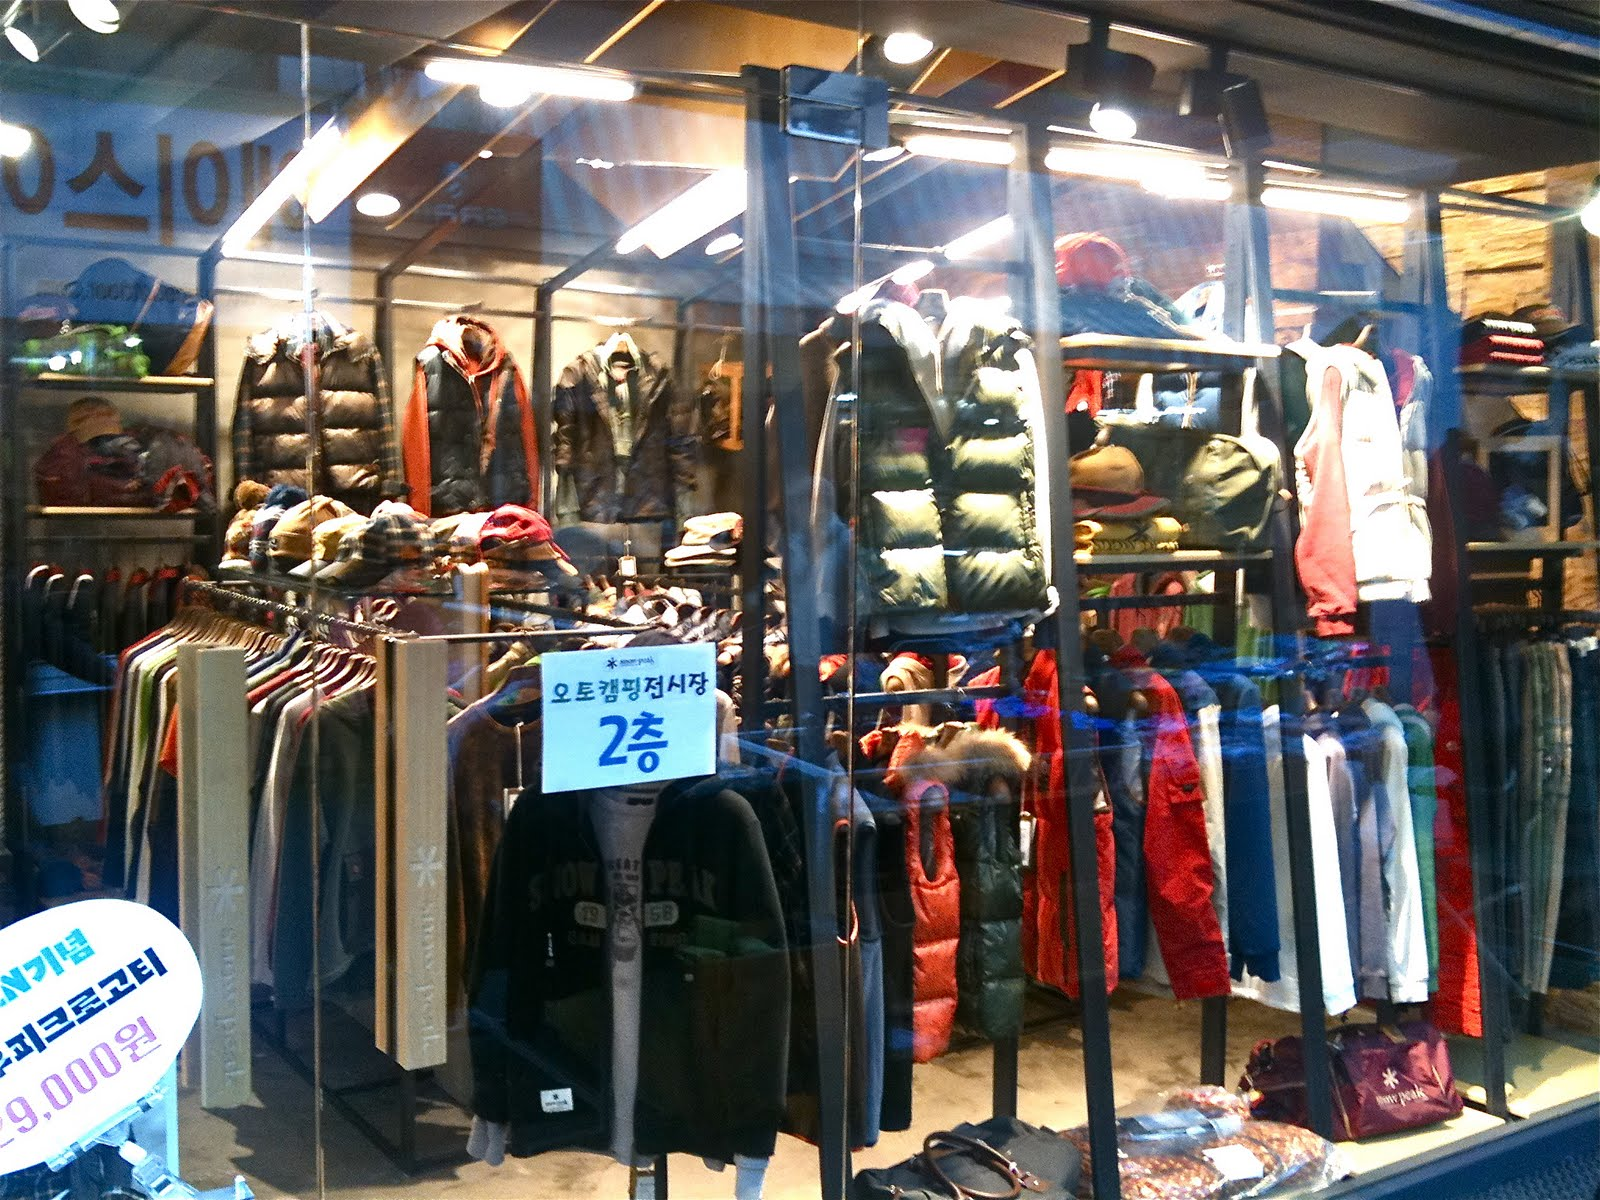 Snow clothing store